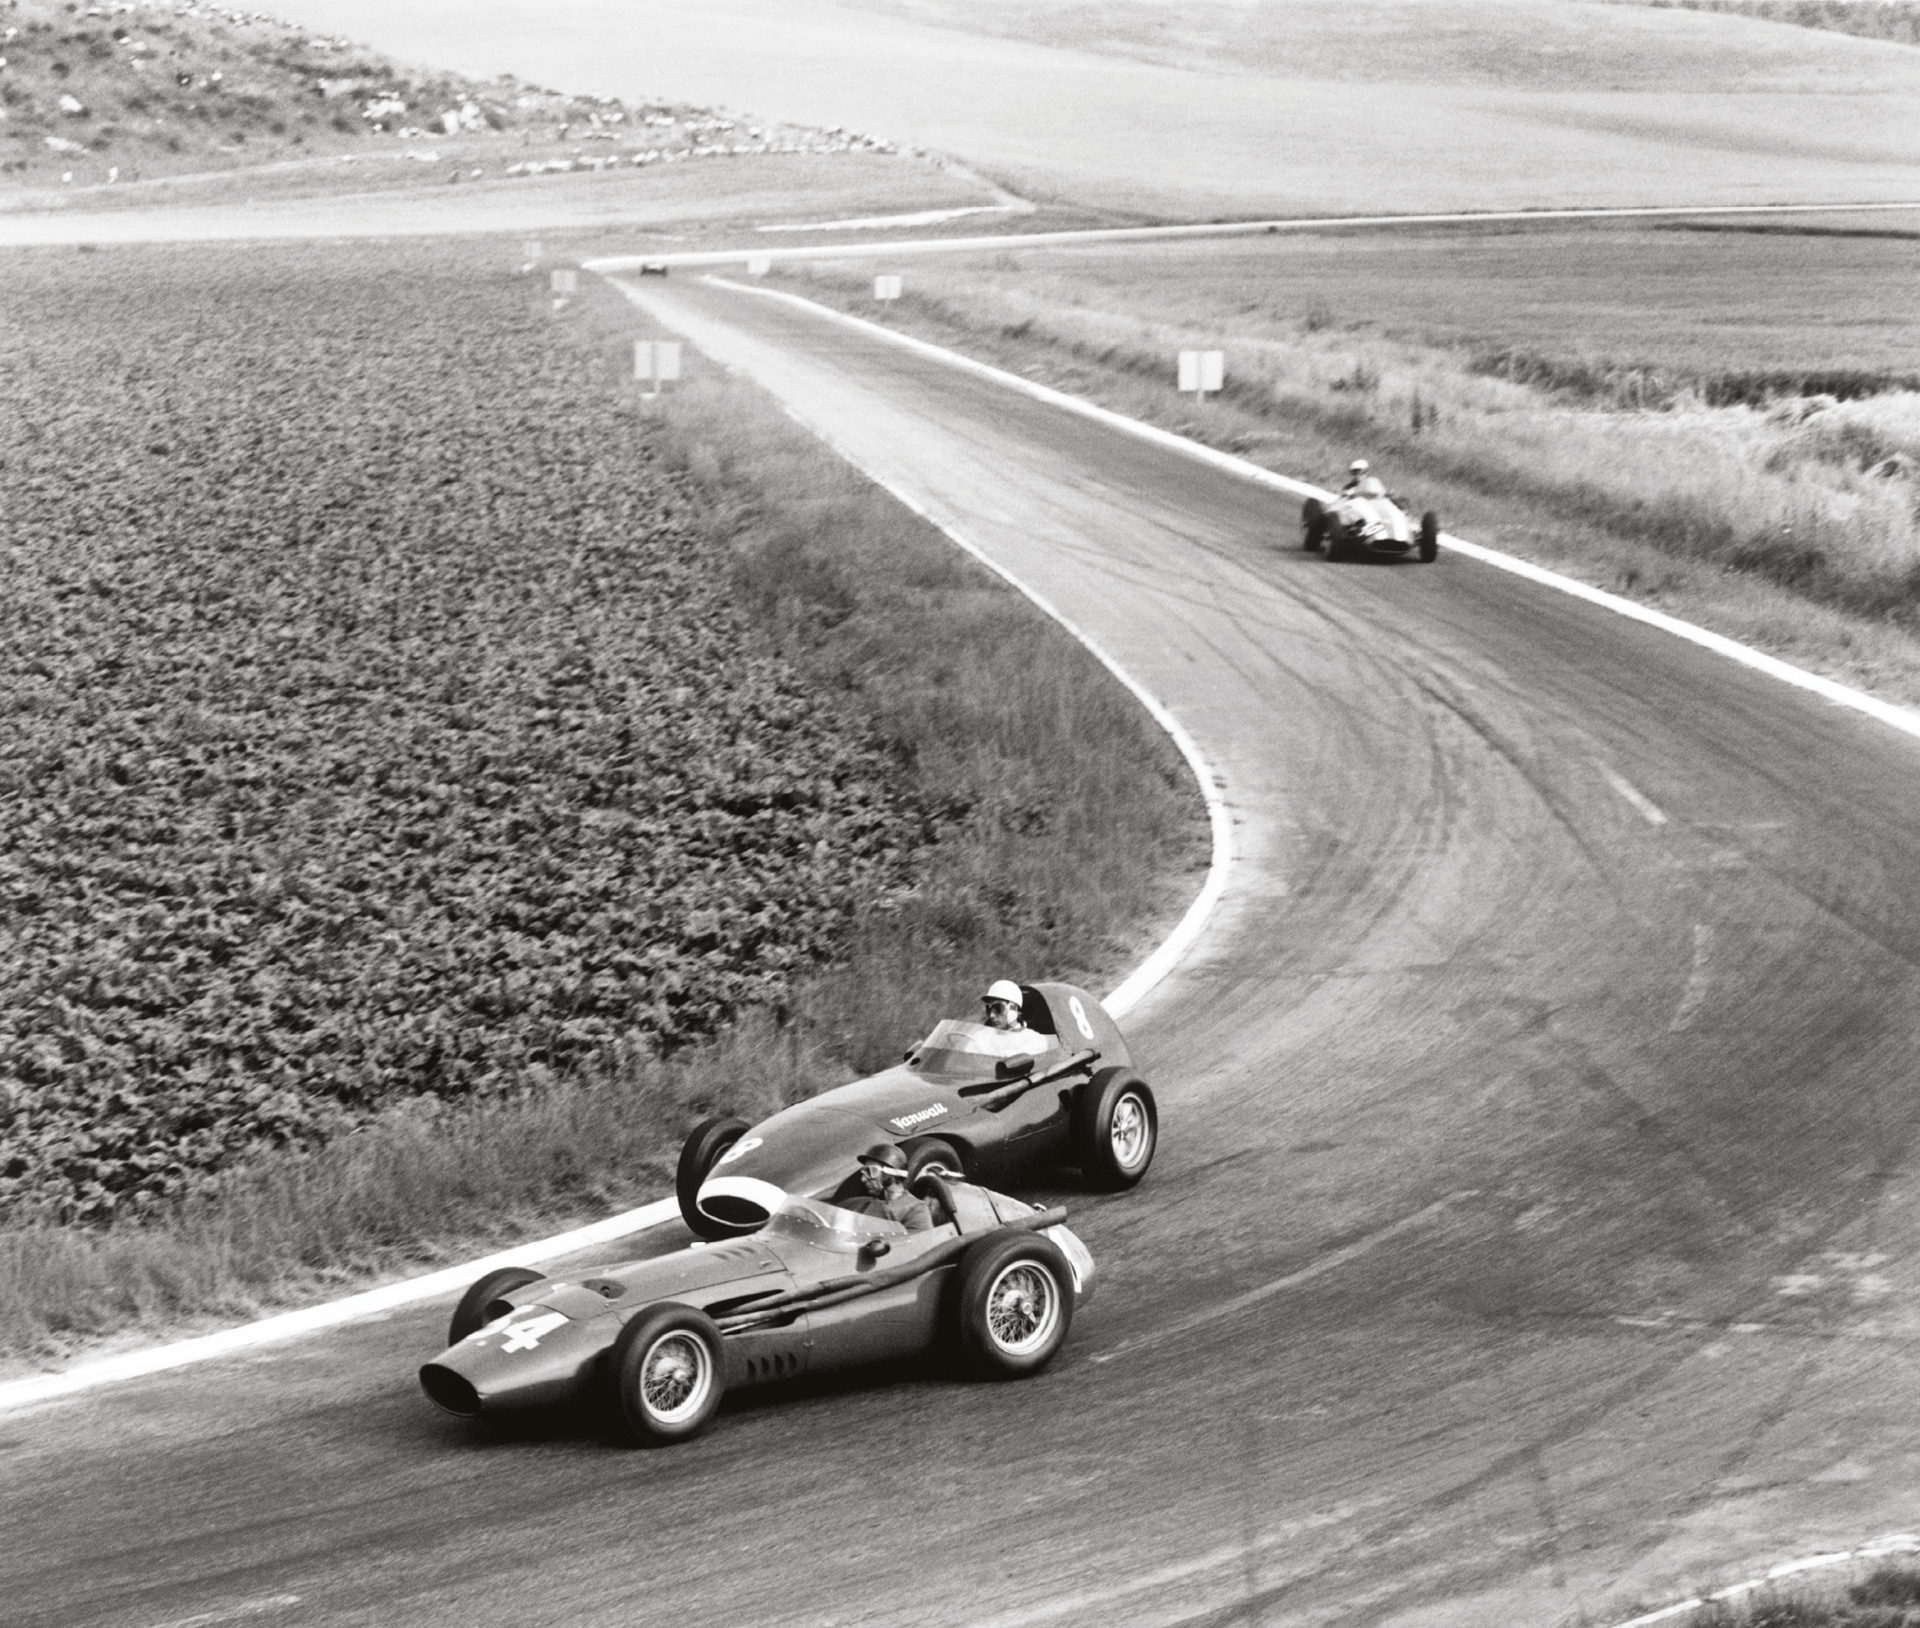 Juan Manuel Fangio's Maserati leads Stirling Moss in his Vanwall. While Italians dominated the early days, Vanwall won the first makes' crown in 1958